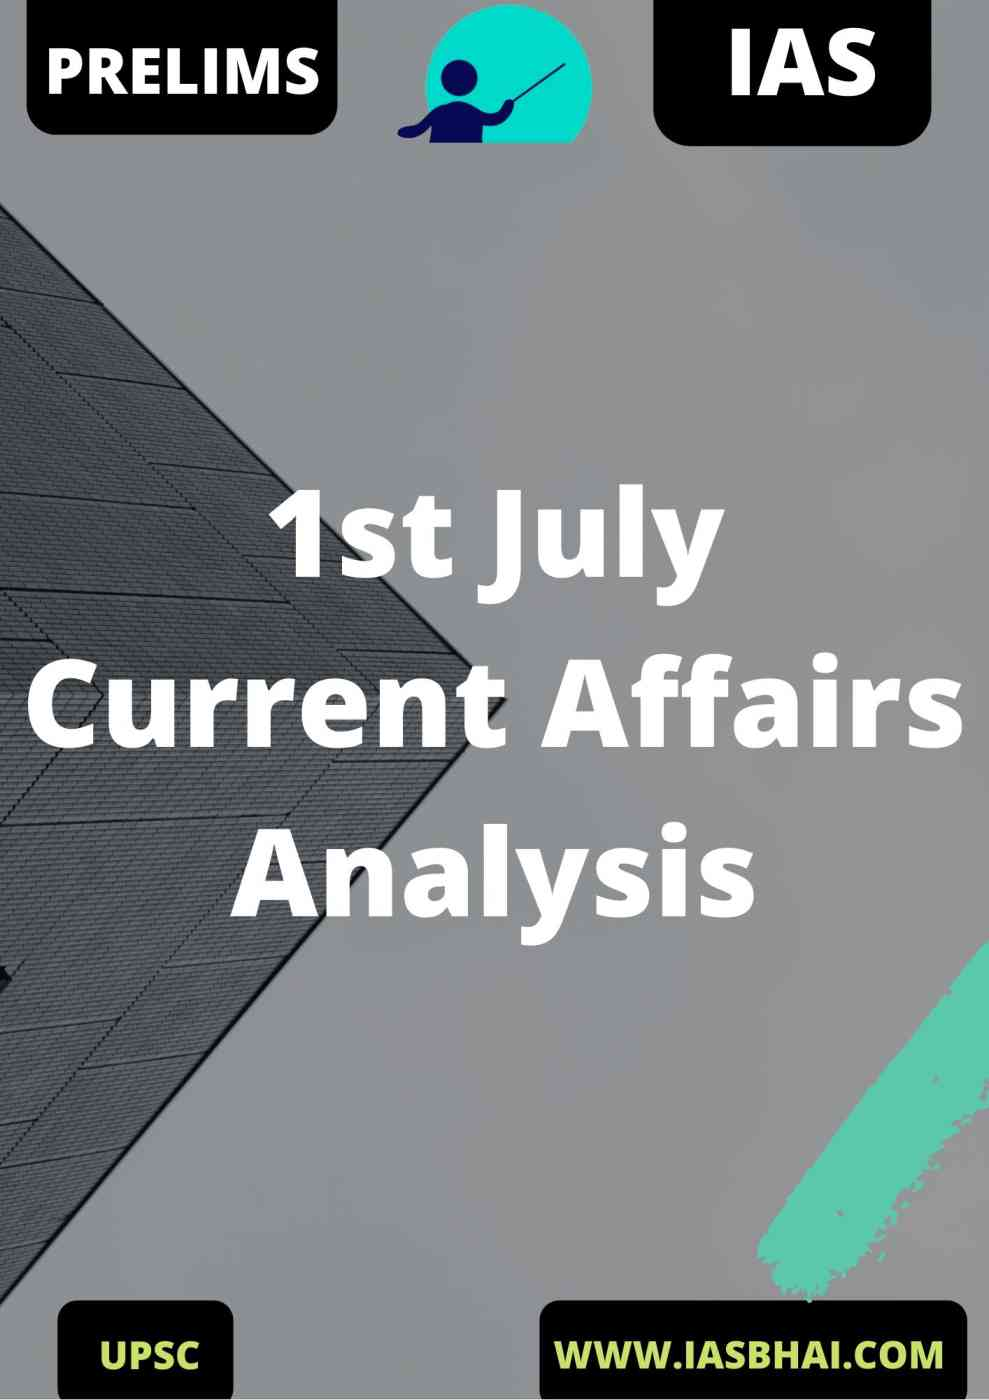 1st July Current Affairs News Analysis Prelims & Mains 2020